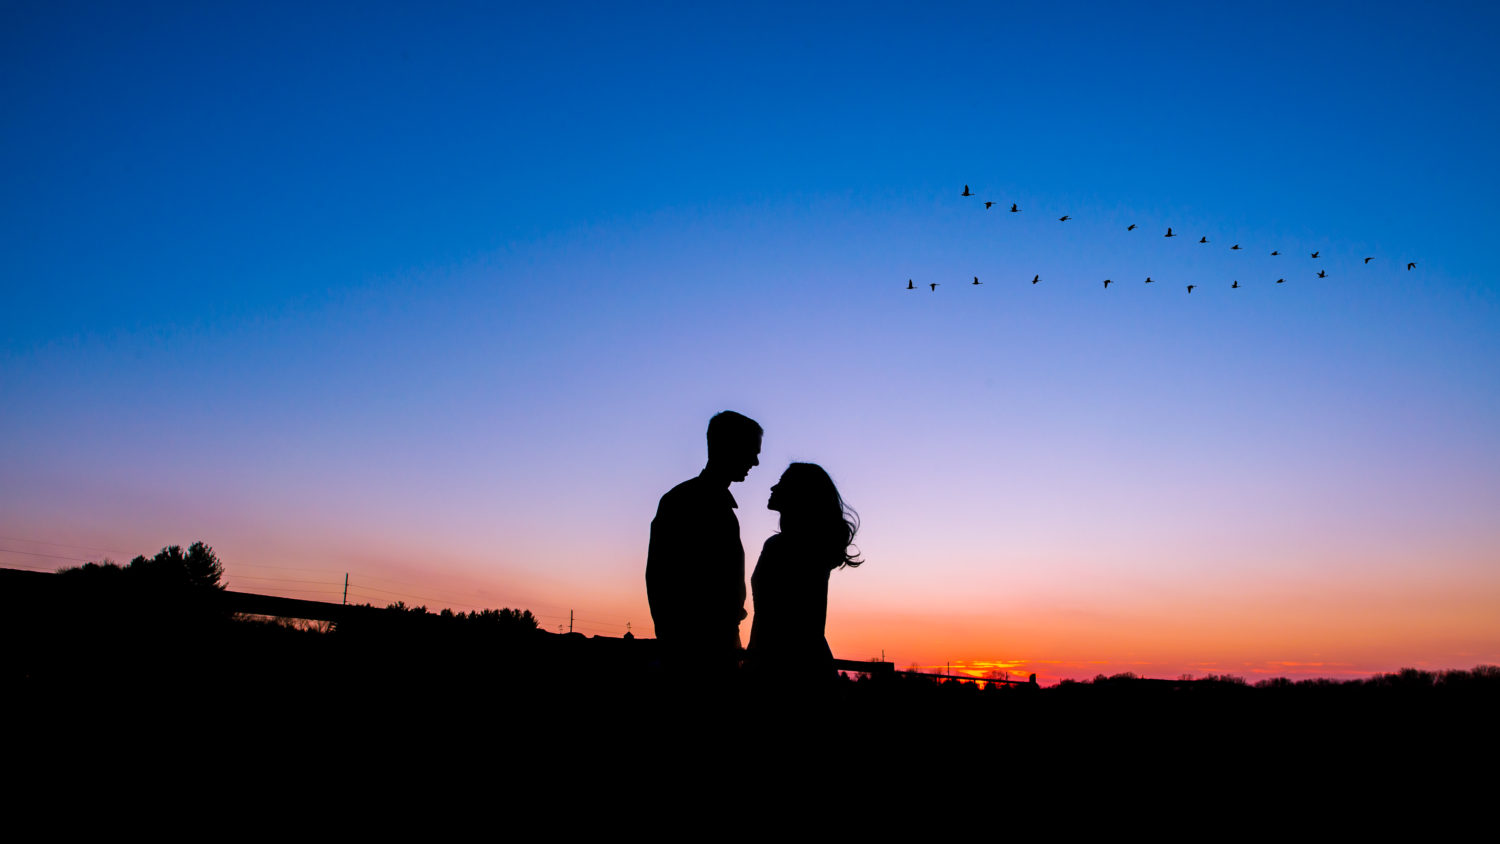 Silhouette engagement photo with flying v of geese!